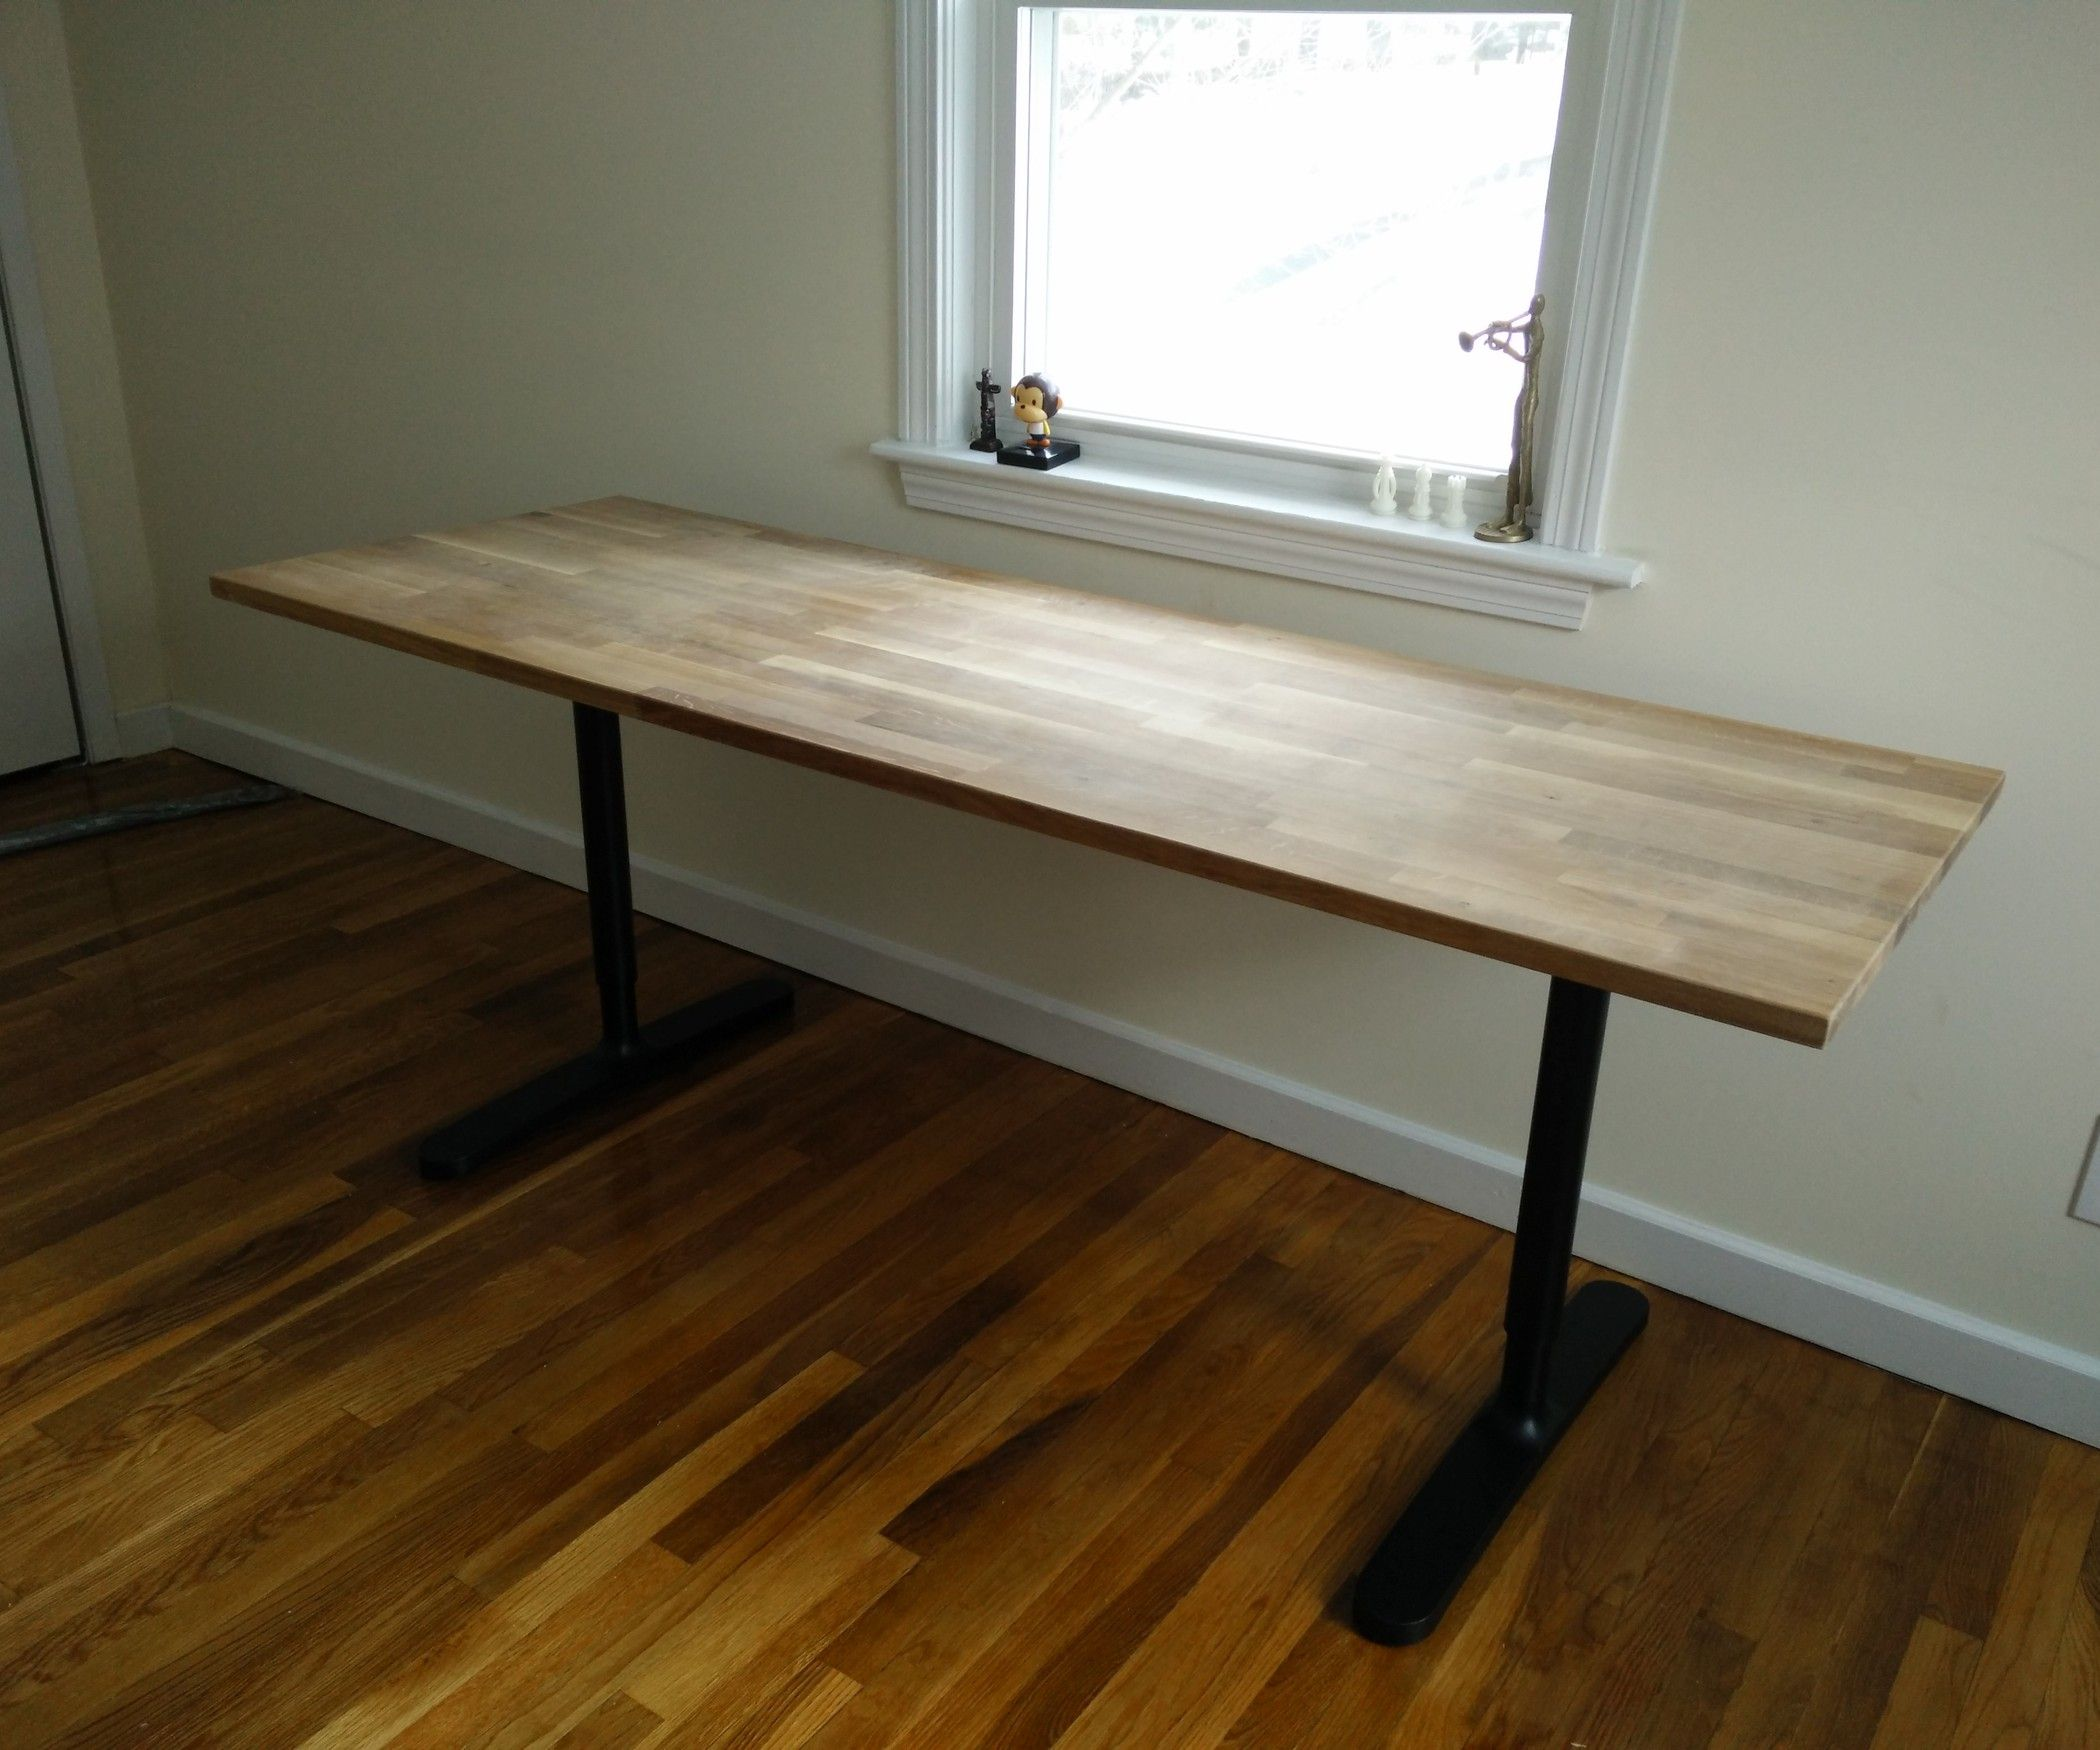 Butcher Block Countertop Table (IKEA Hack) | Butcher block tables ...